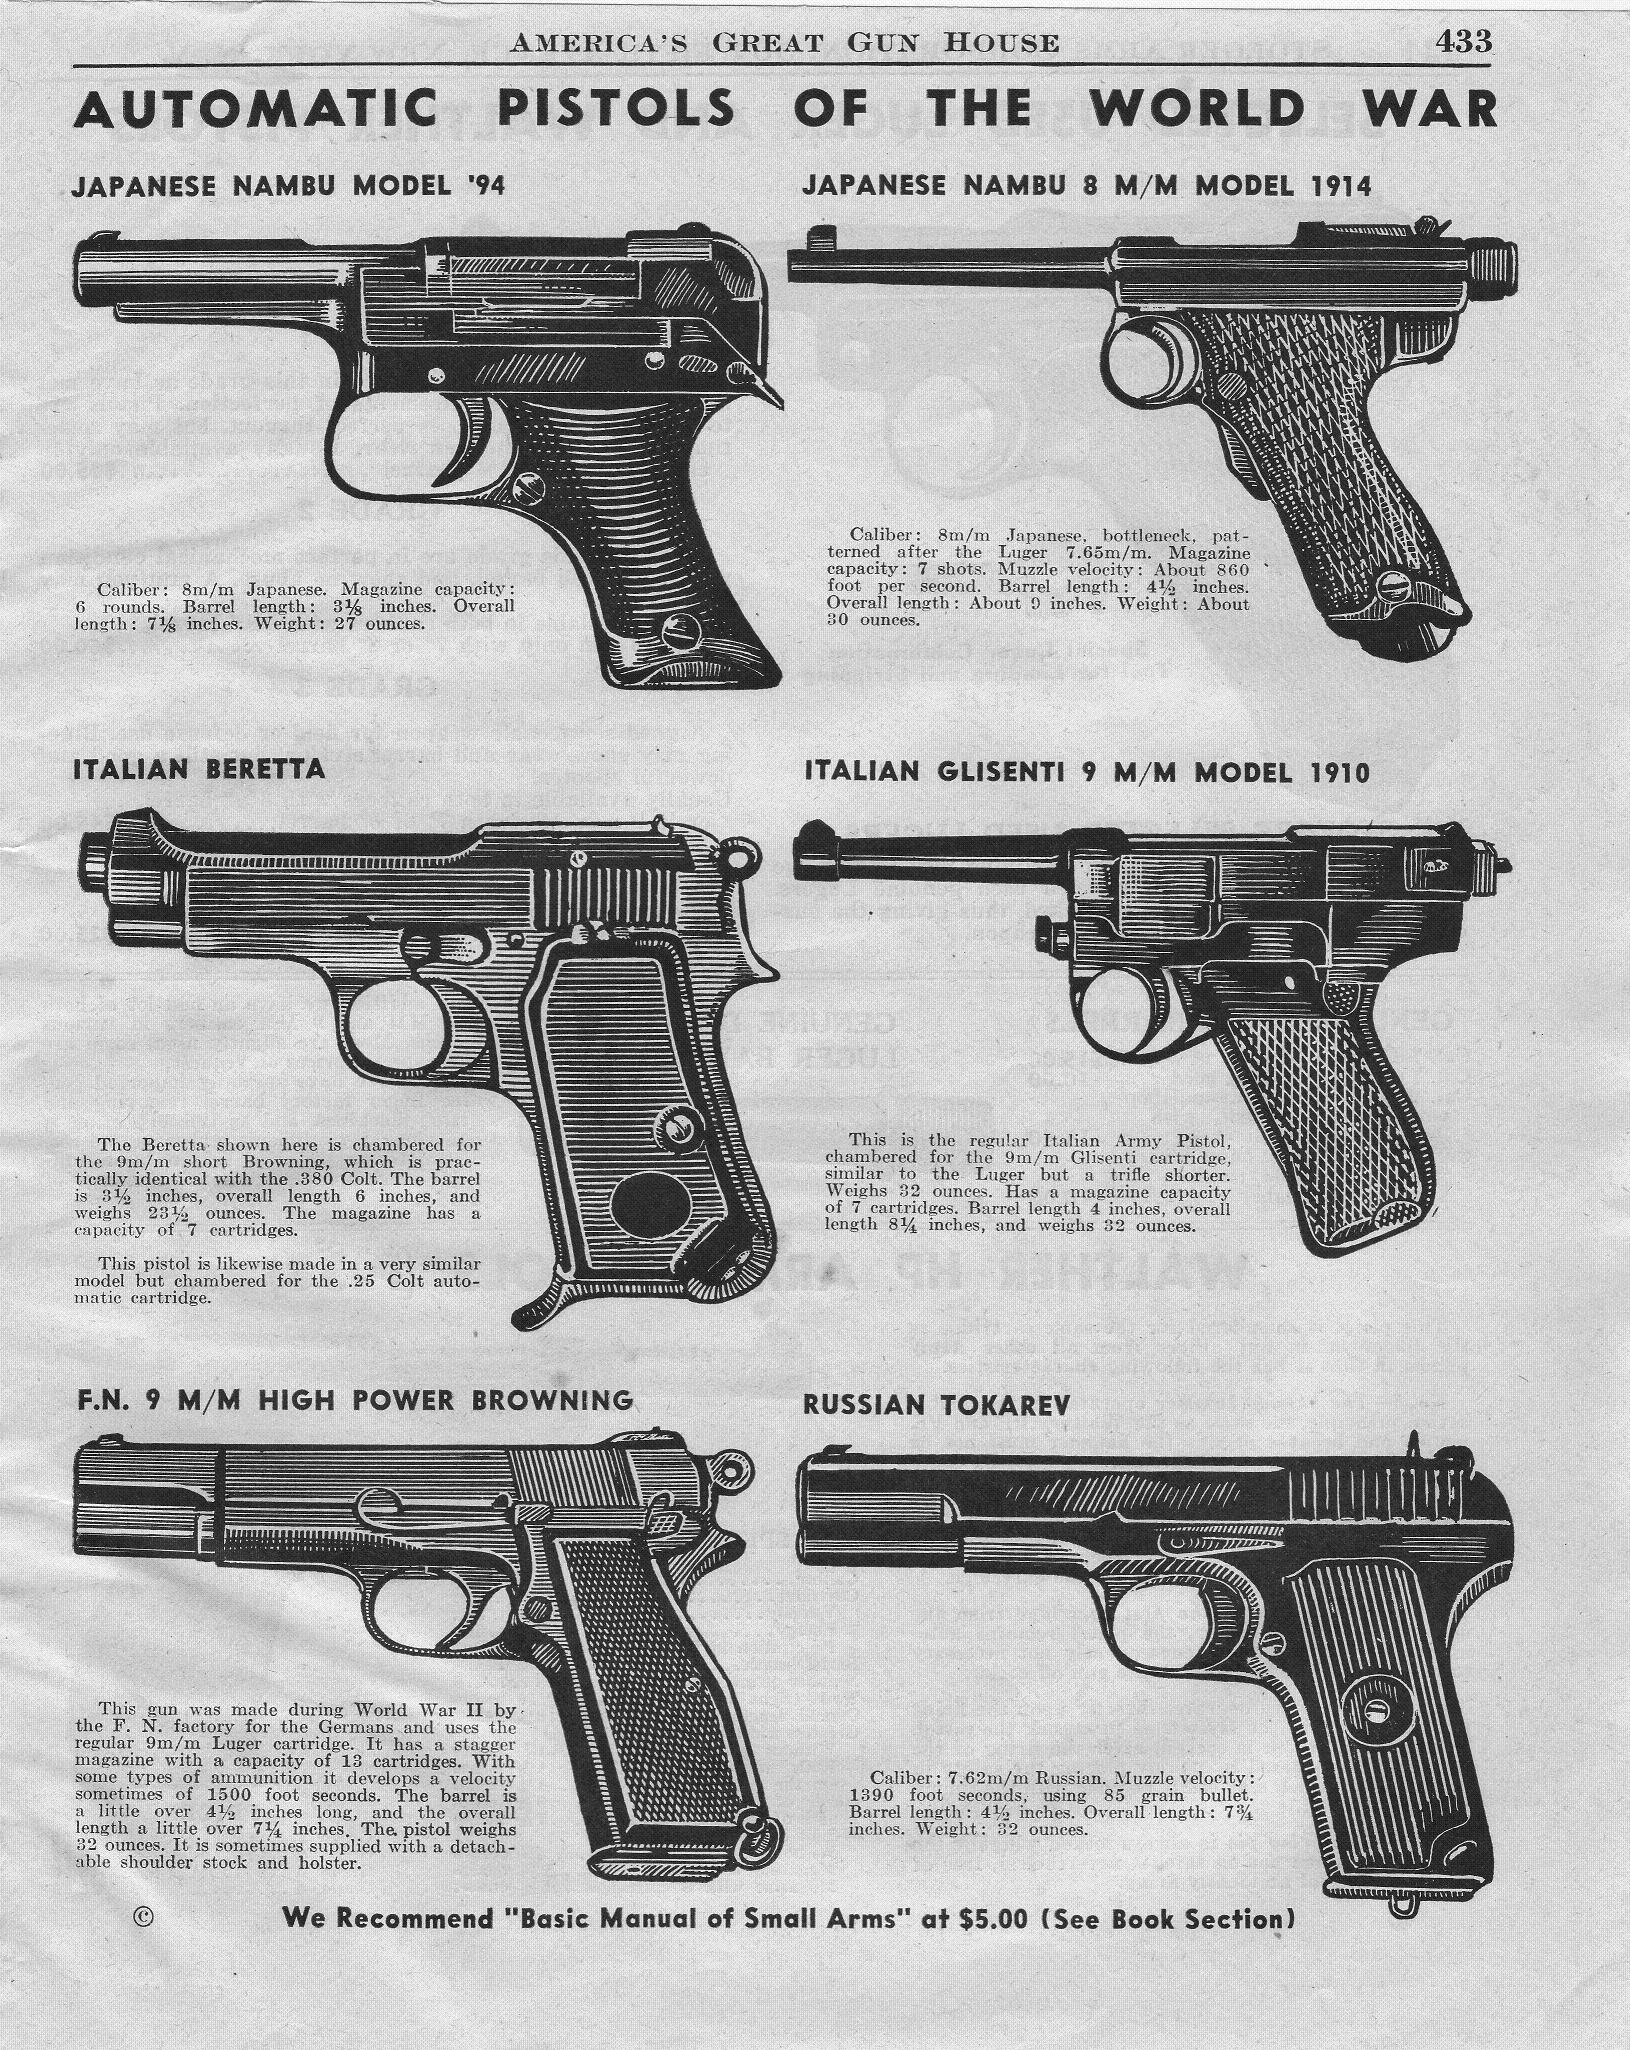 walther p 38 pistol rh p 38 info Walther P38 Schematic walther p38 instruction manual